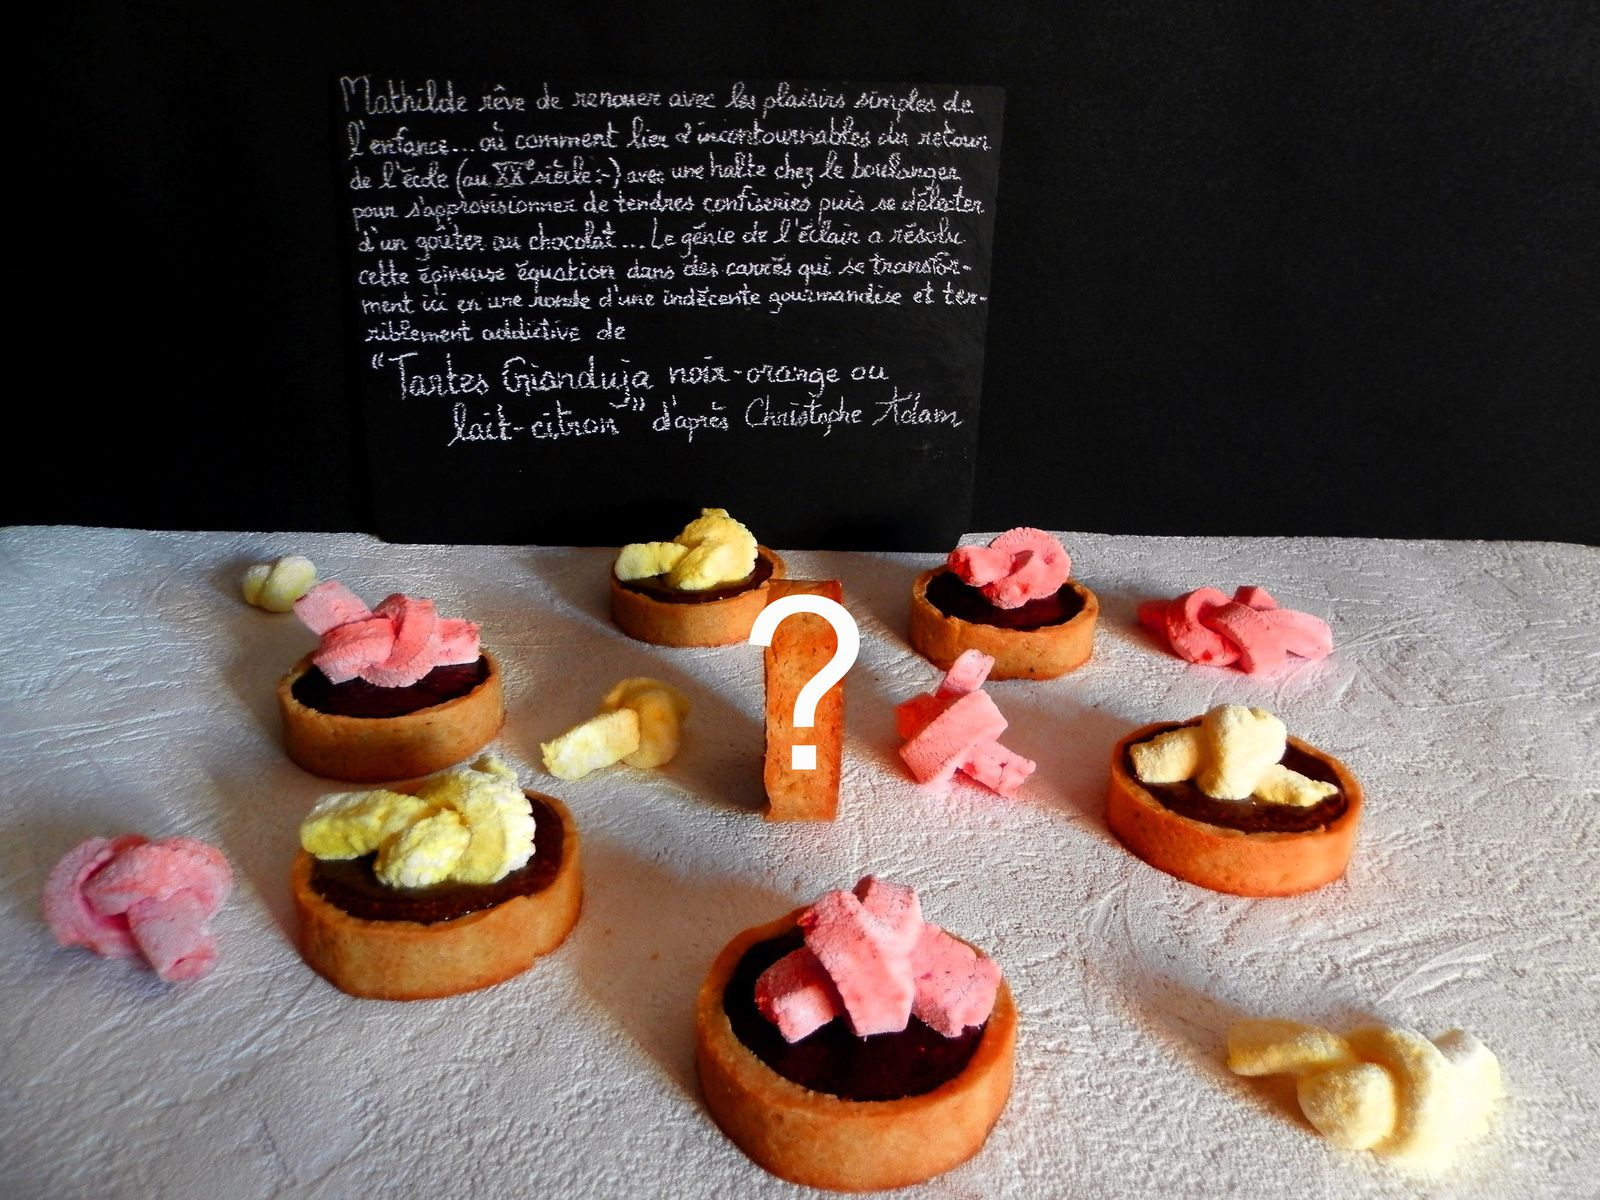 Tartes Gianduja noir-orange ou lait-citron d'après Christophe Adam